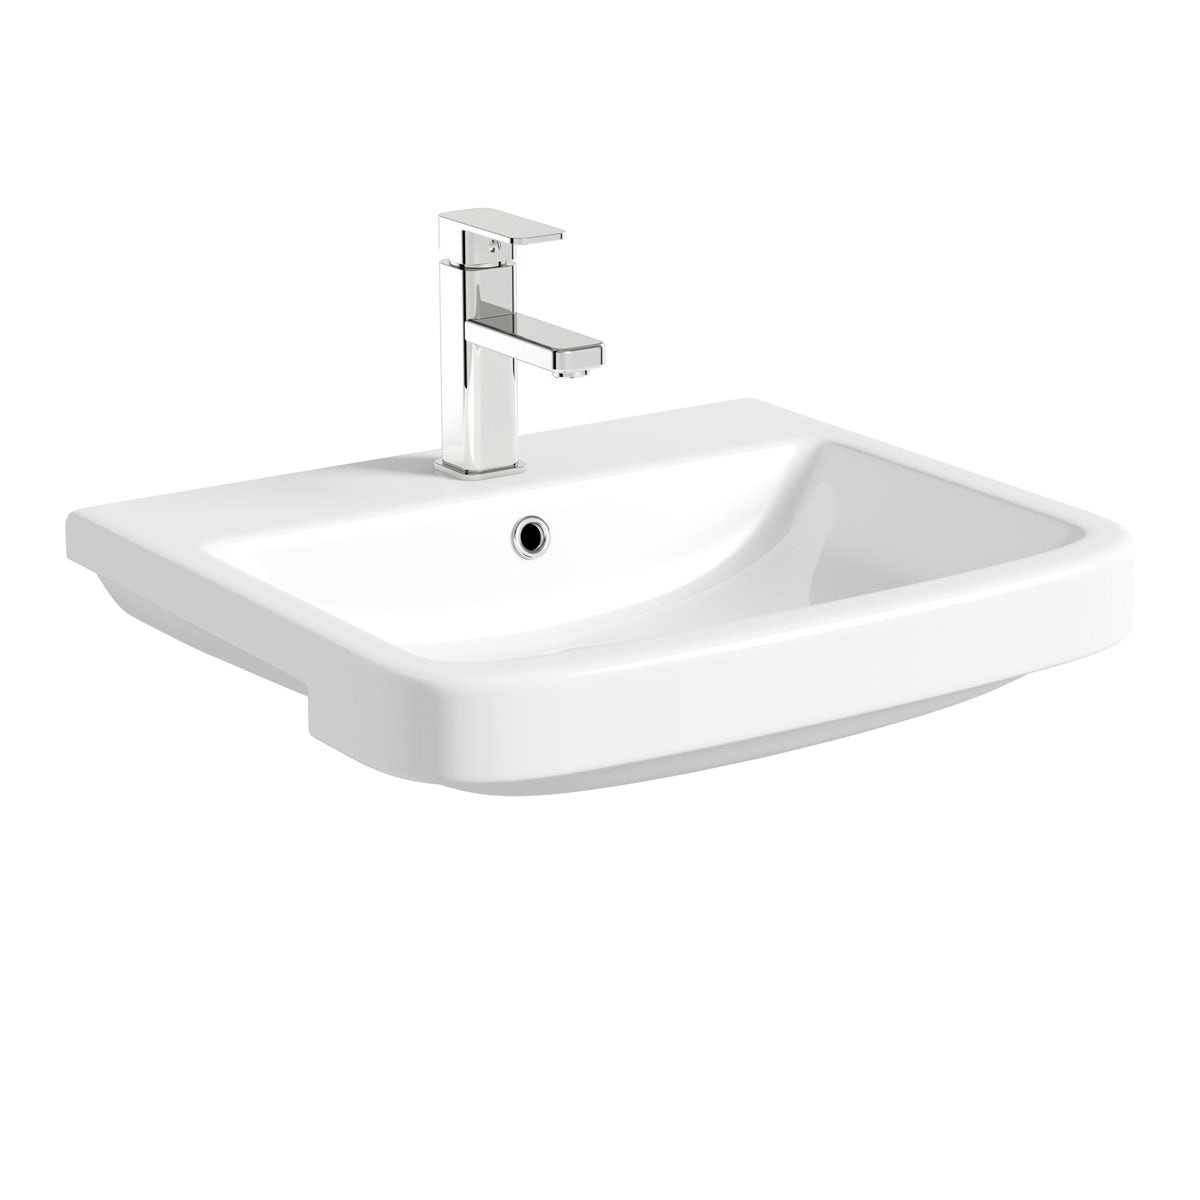 Mode Carter 1 tap hole semi recessed basin 550mm